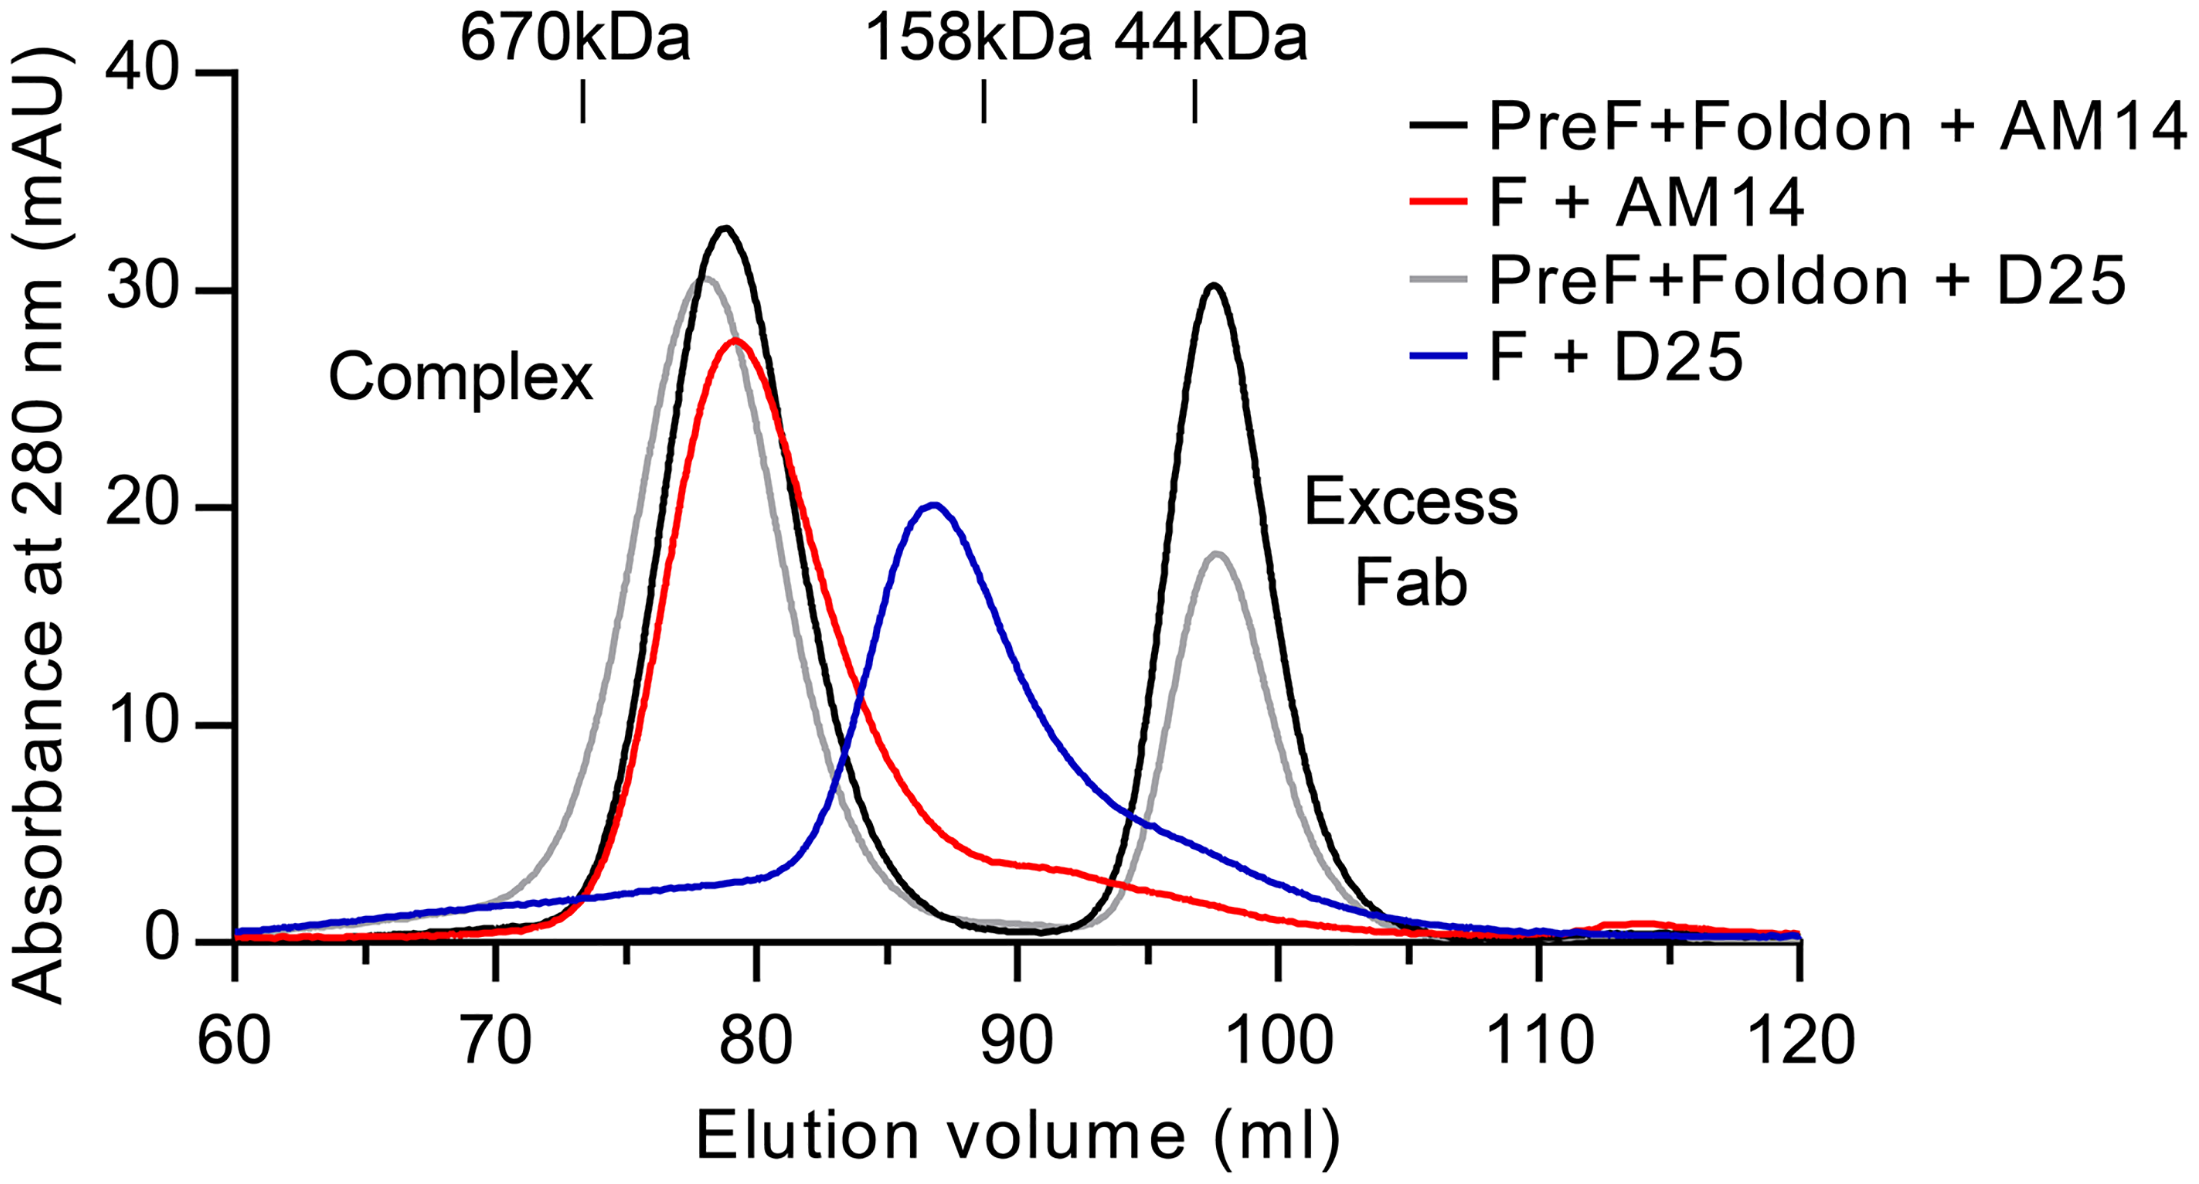 AM14 stabilizes RSV F trimer in the absence of the foldon trimerization motif.